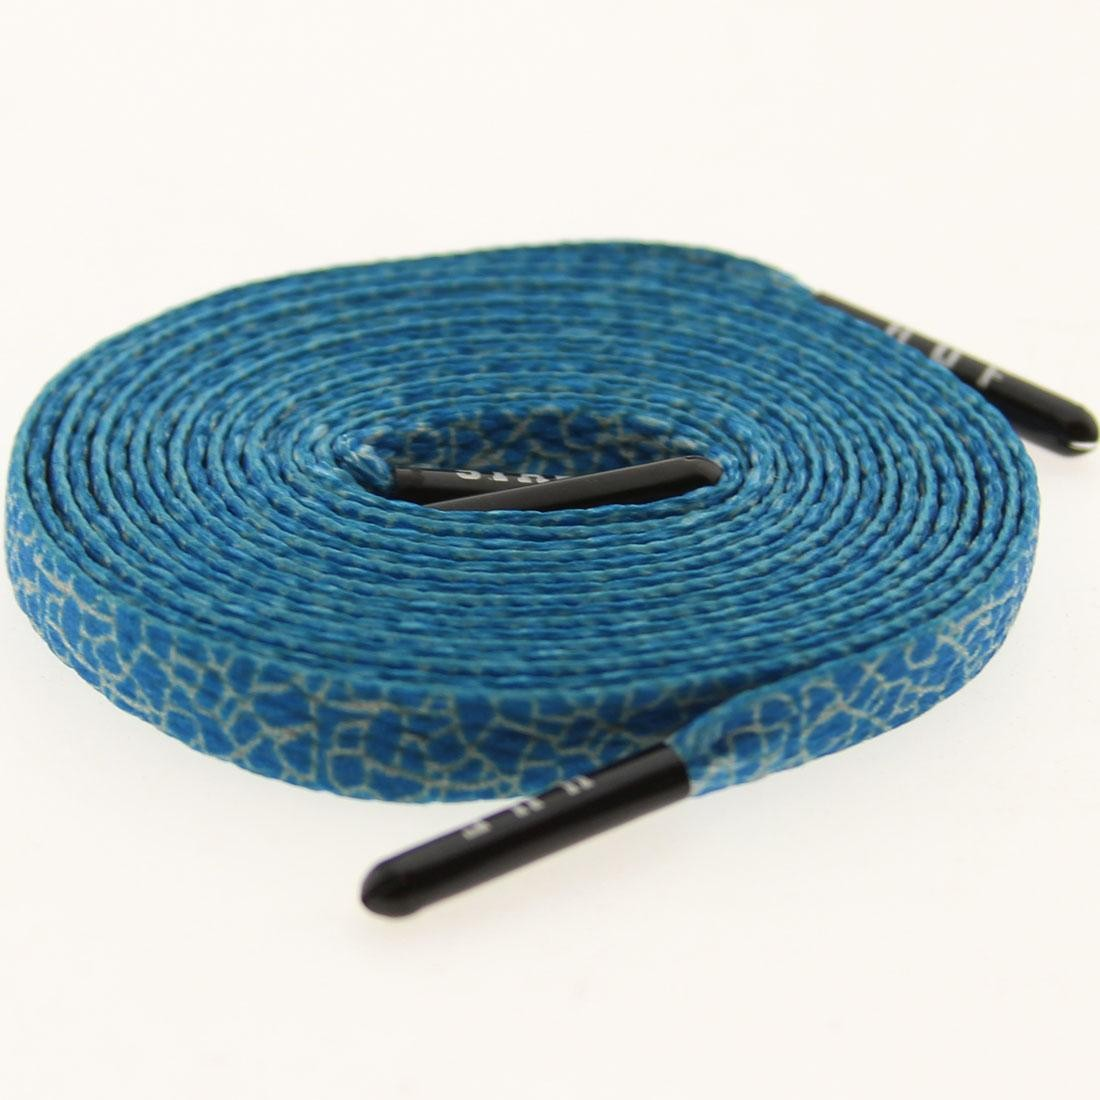 Quake Blue Shoelaces shoestrings 0003-45Inch-1S $6.00 Starks Laces x HUF